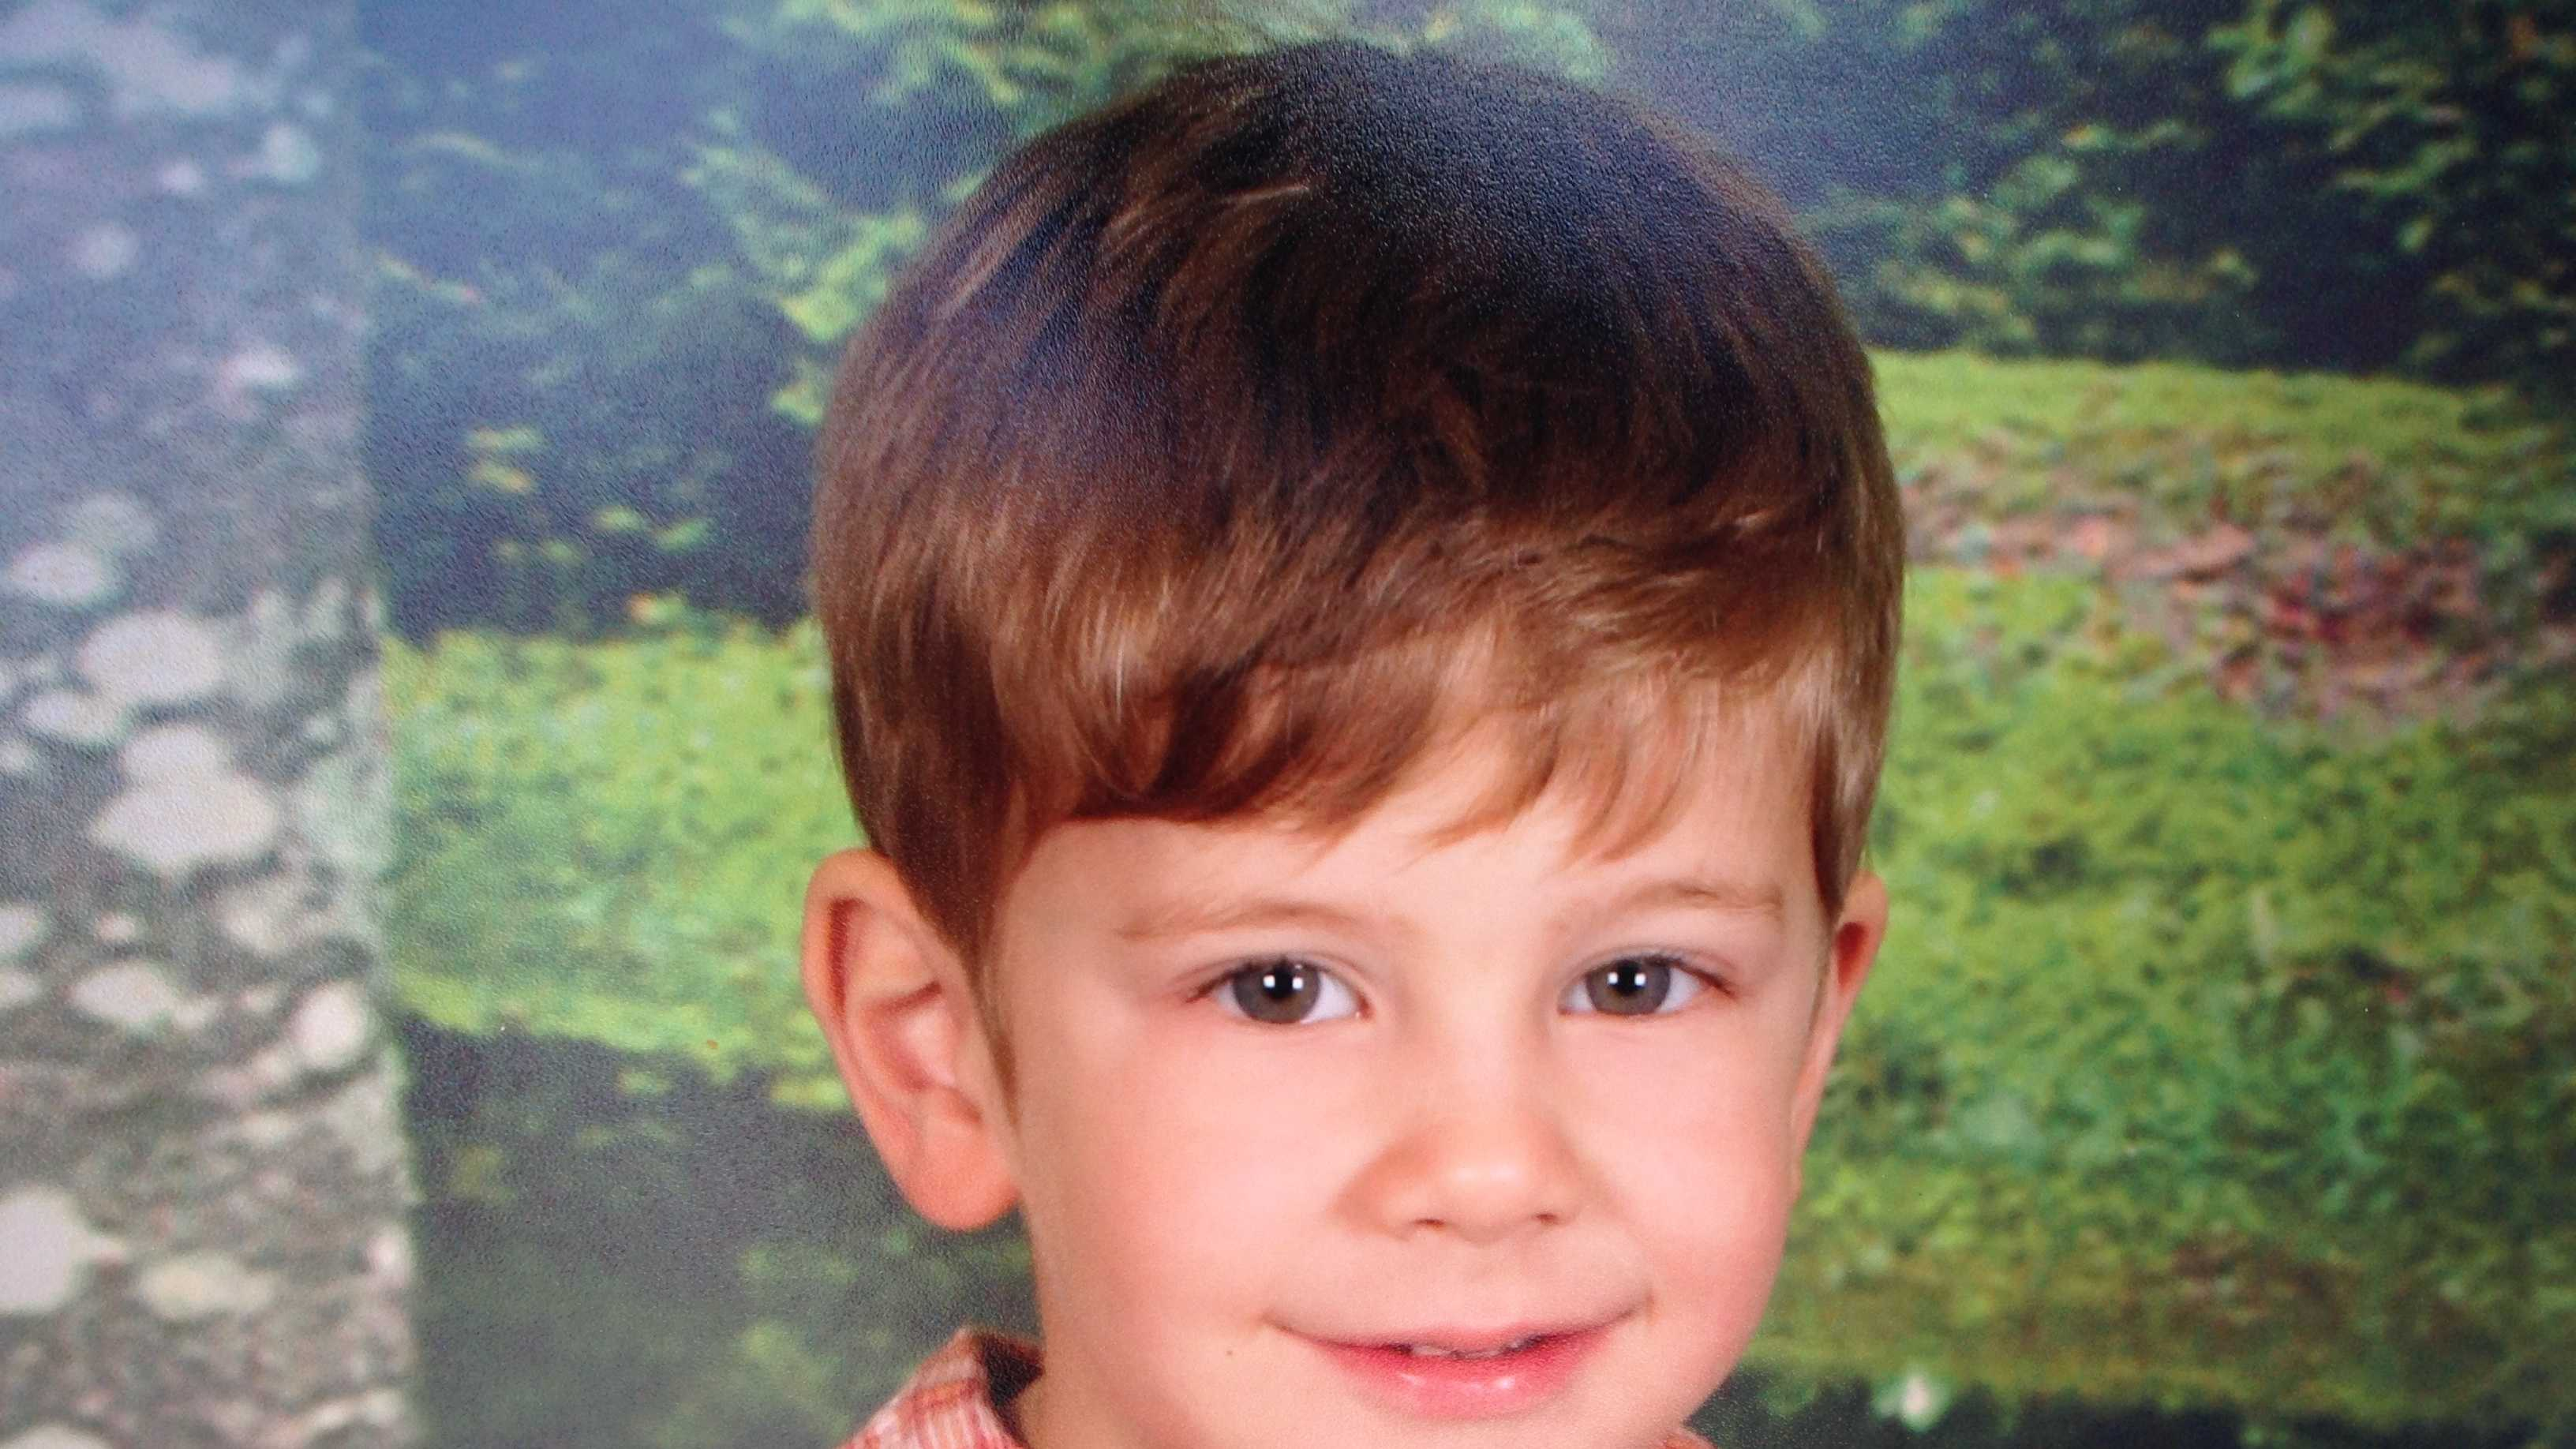 Drake Smith Jr., 4, died Aug. 1 at Tulane Medical Center after an infection caused by Naegleria fowleri -- a brain eating amoeba found in the St. Bernard Parish water supply.